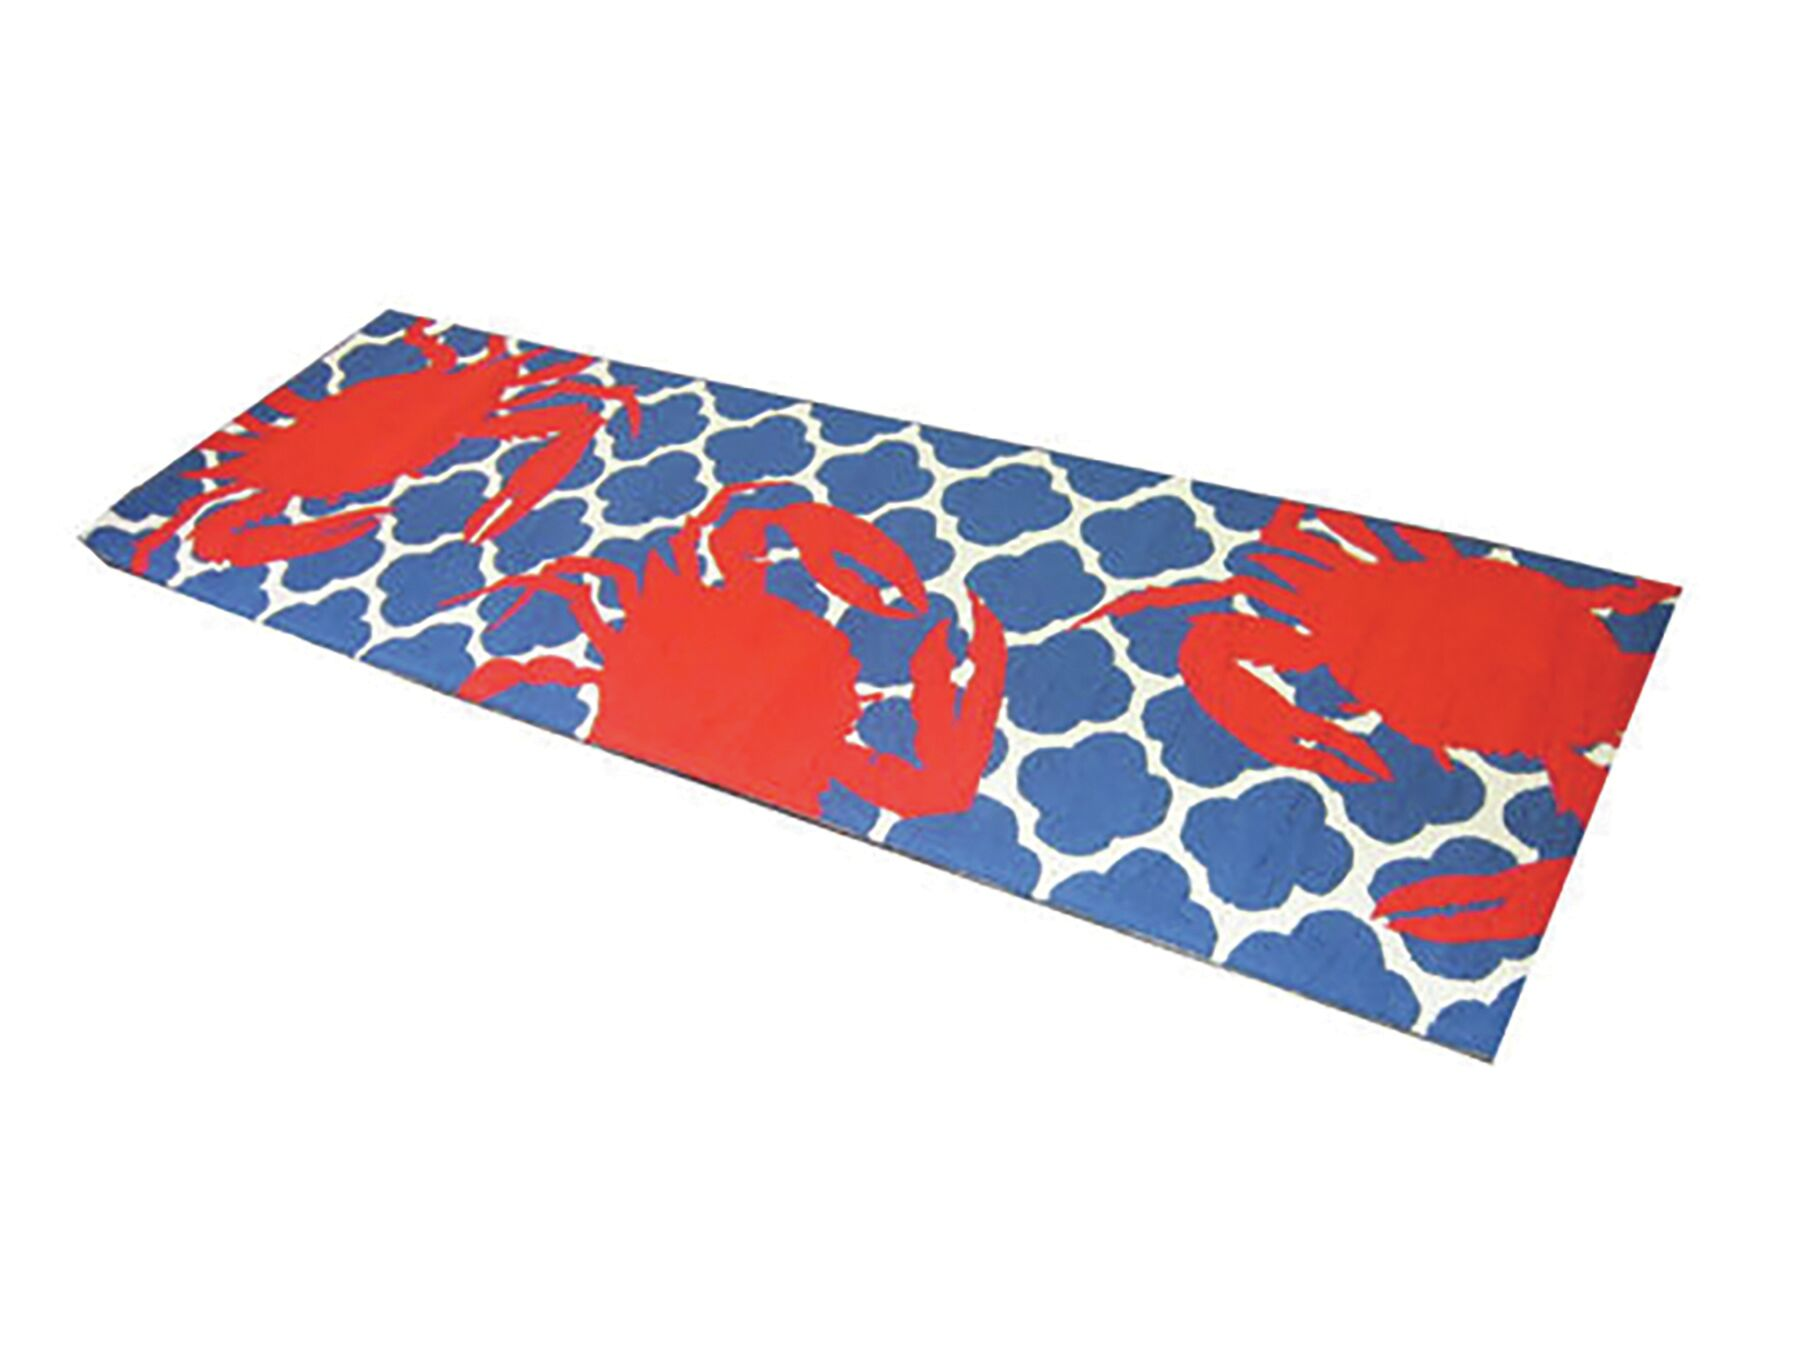 Kara Ogee Hand-Hooked Wool Red/Blue Area Rug Rug Size: Runner 2'7